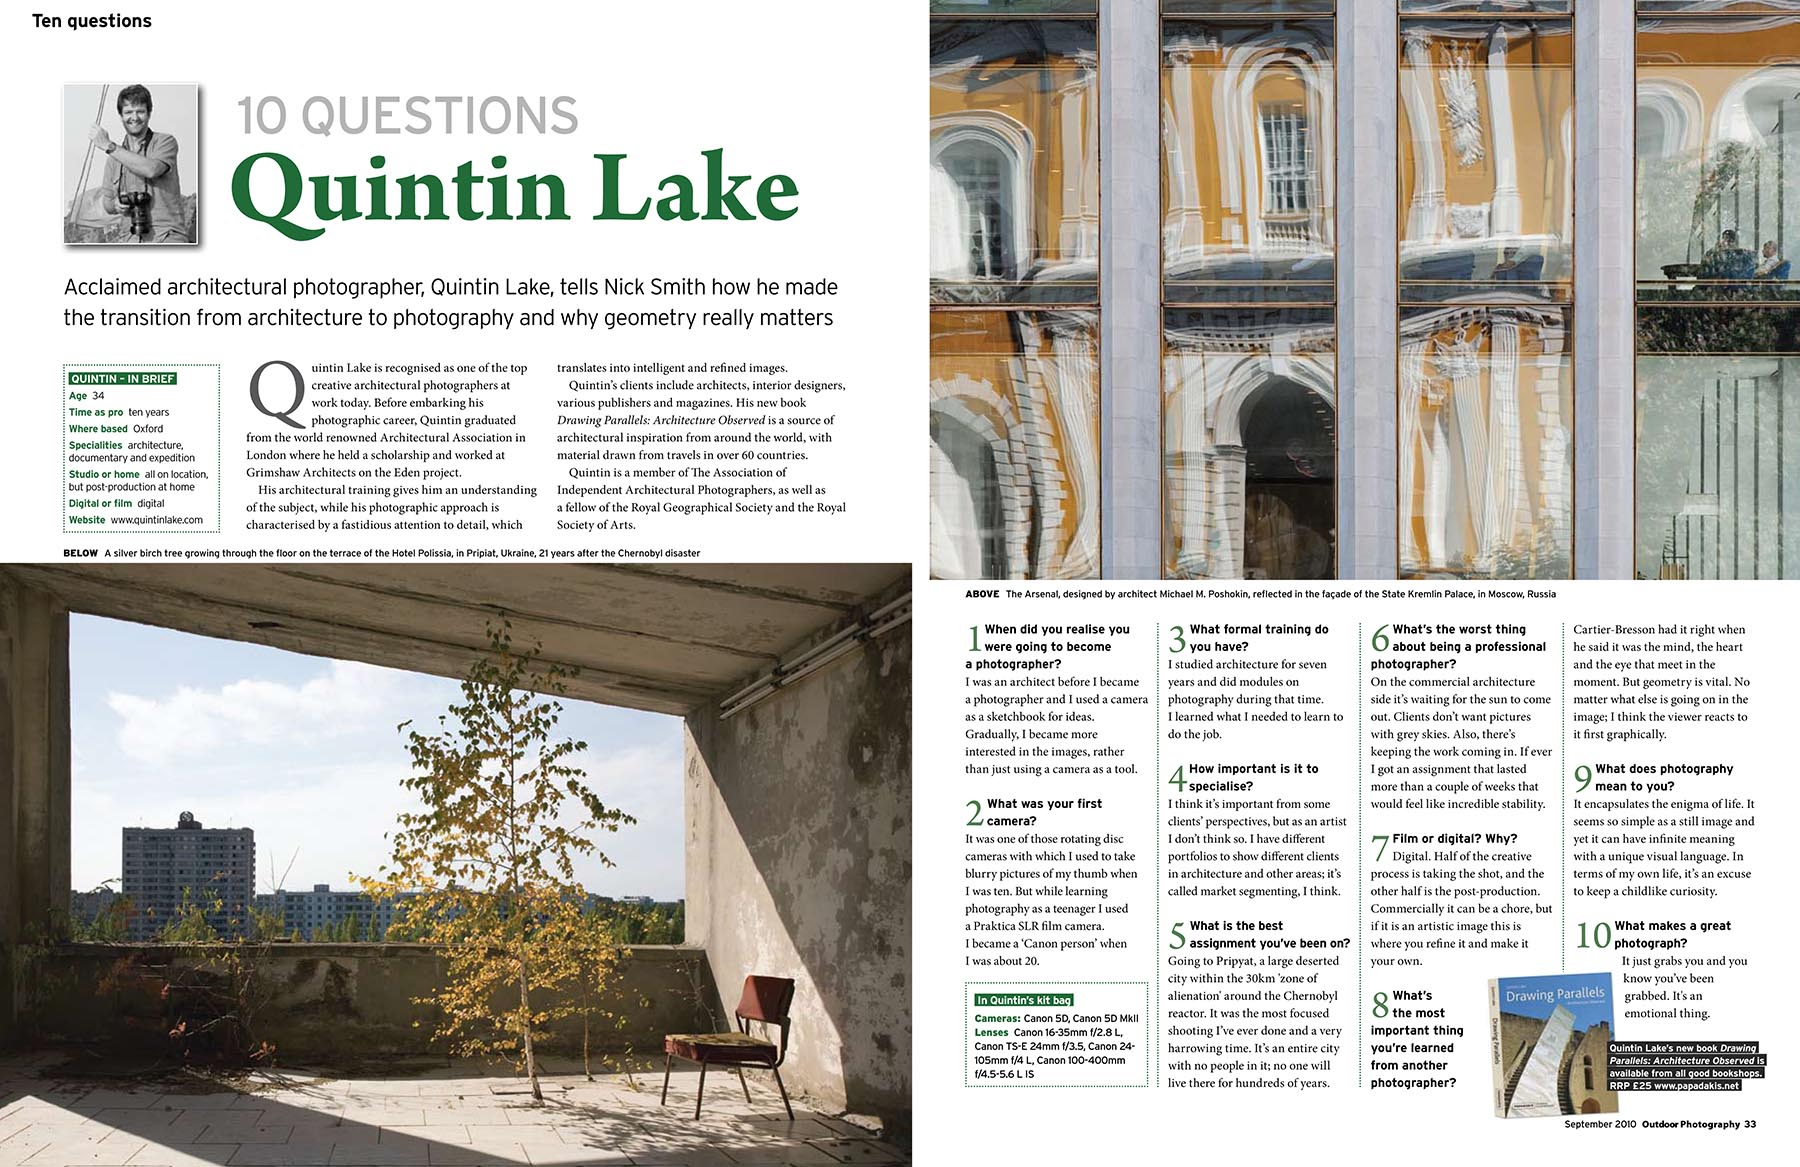 questions quintin lake interview in outdoor photography 10 questions interview